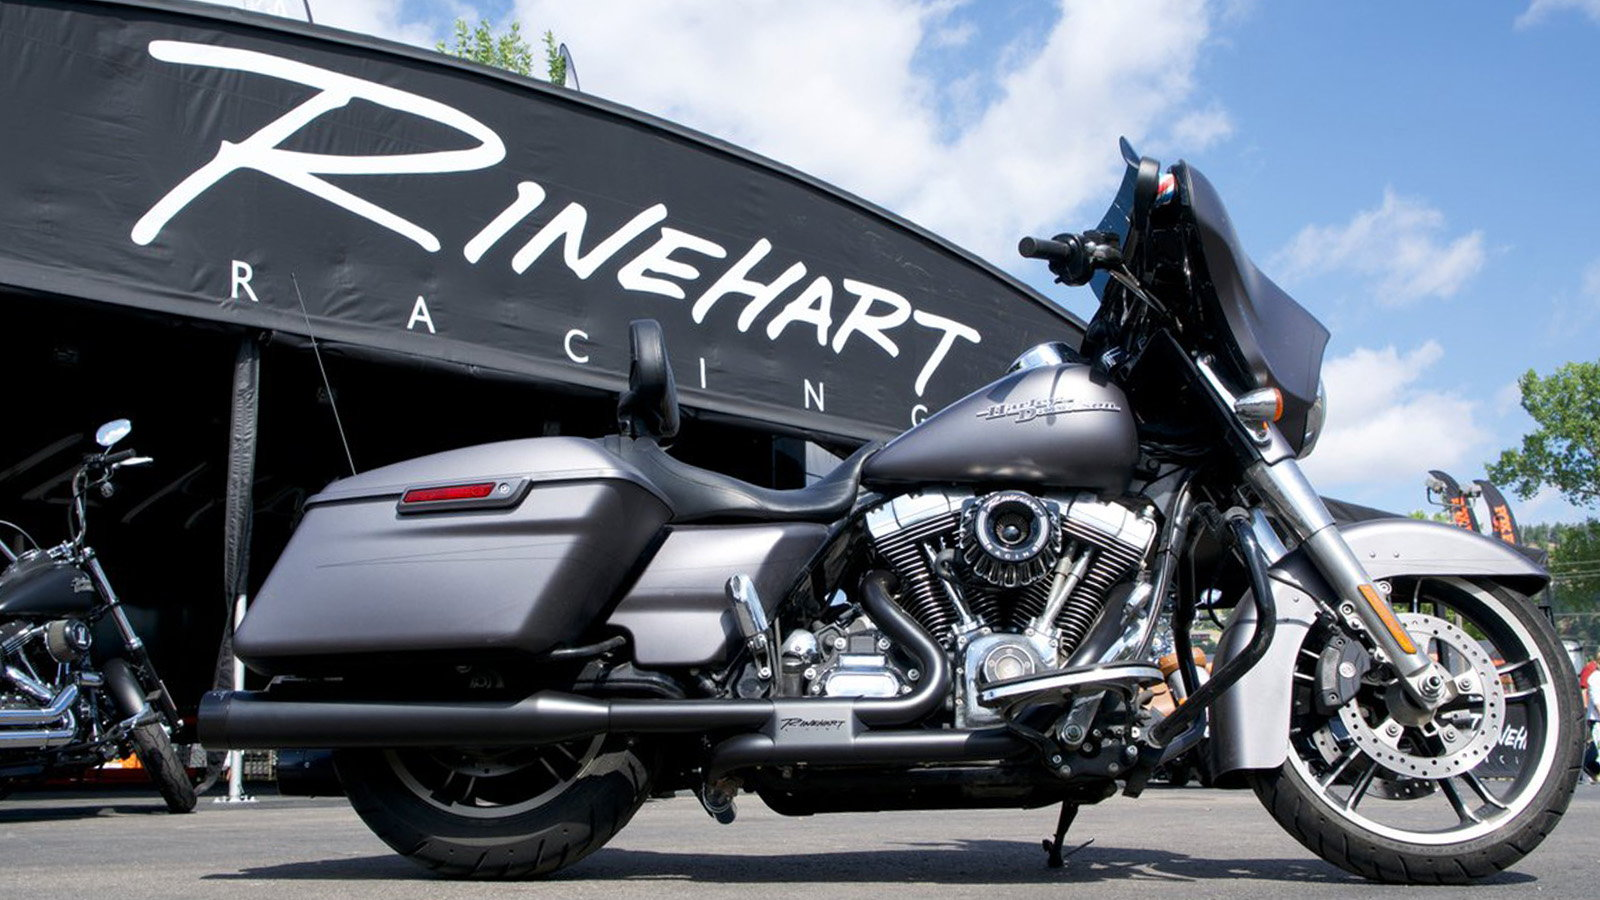 Rinehart Racing Slimline Exhaust System to be Fifty-State